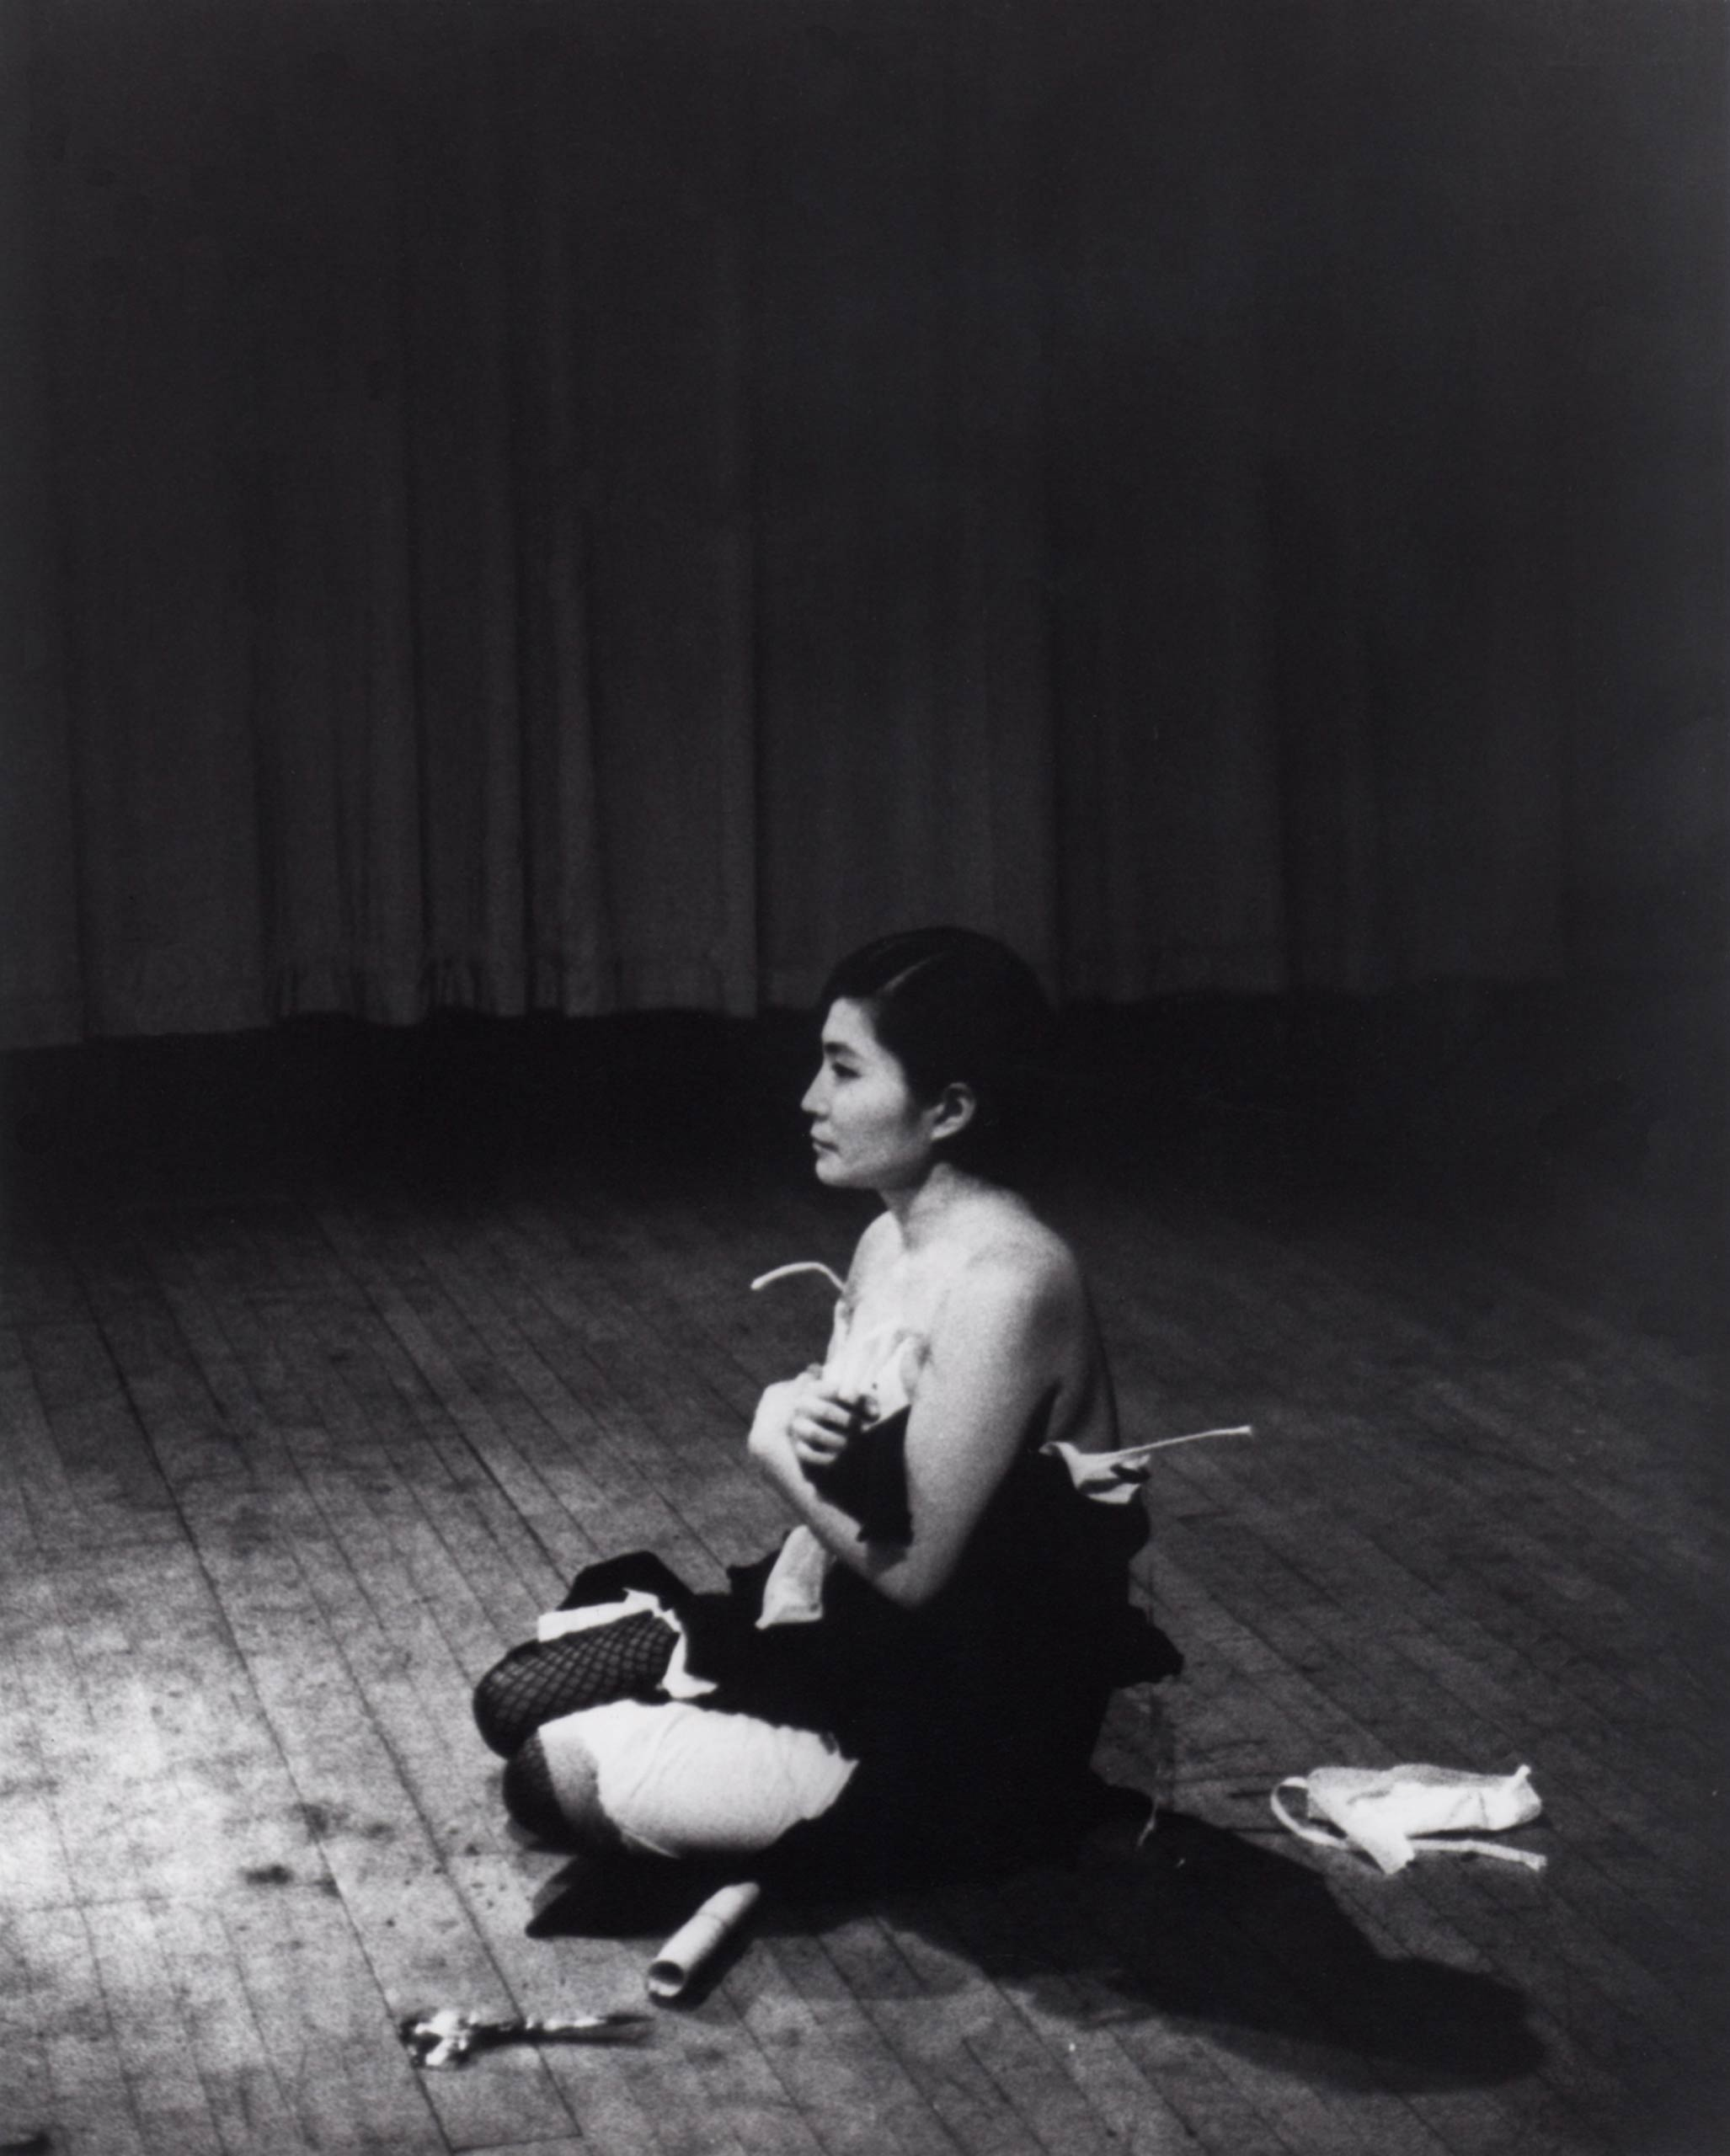 <i>Cut Piece</i>, 1964, performed by Yoko Ono in <i>New Works of Yoko Ono</i> at the Carnegie Recital Hall in New York on March 21, 1965.